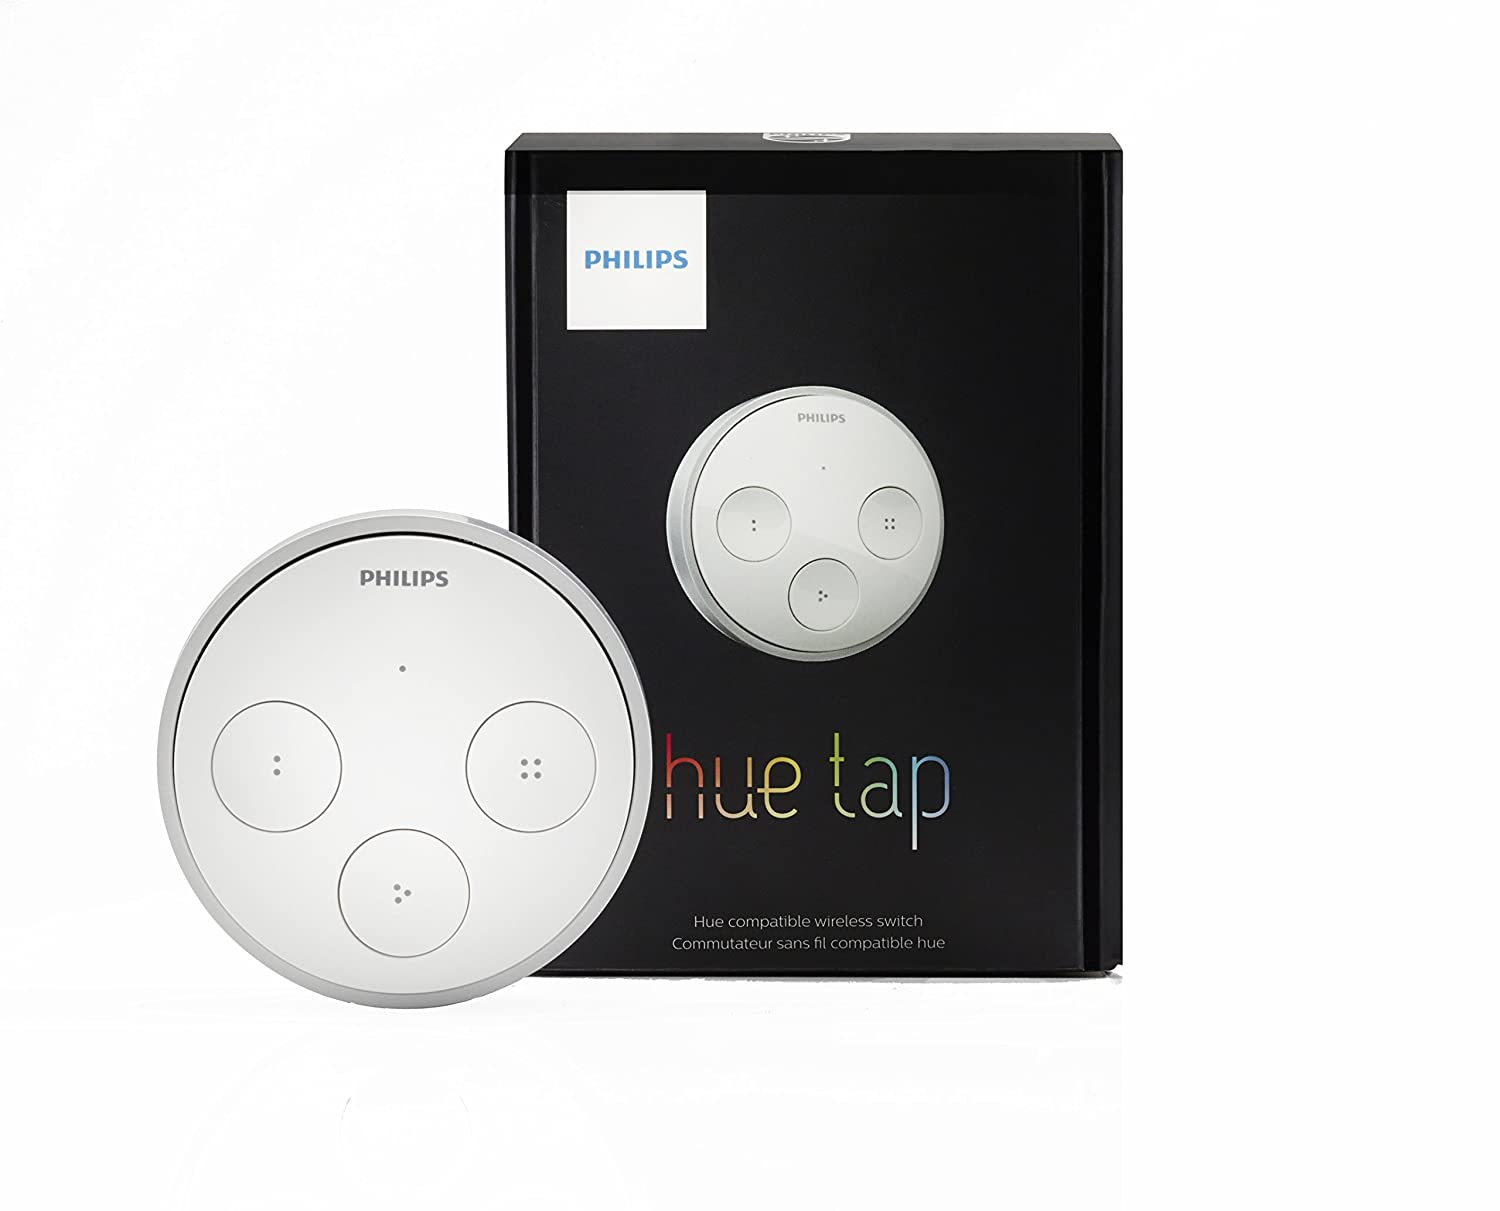 Hue Compatible Lampen : Philips hue tap personal wireless beleuchtung kabelloser